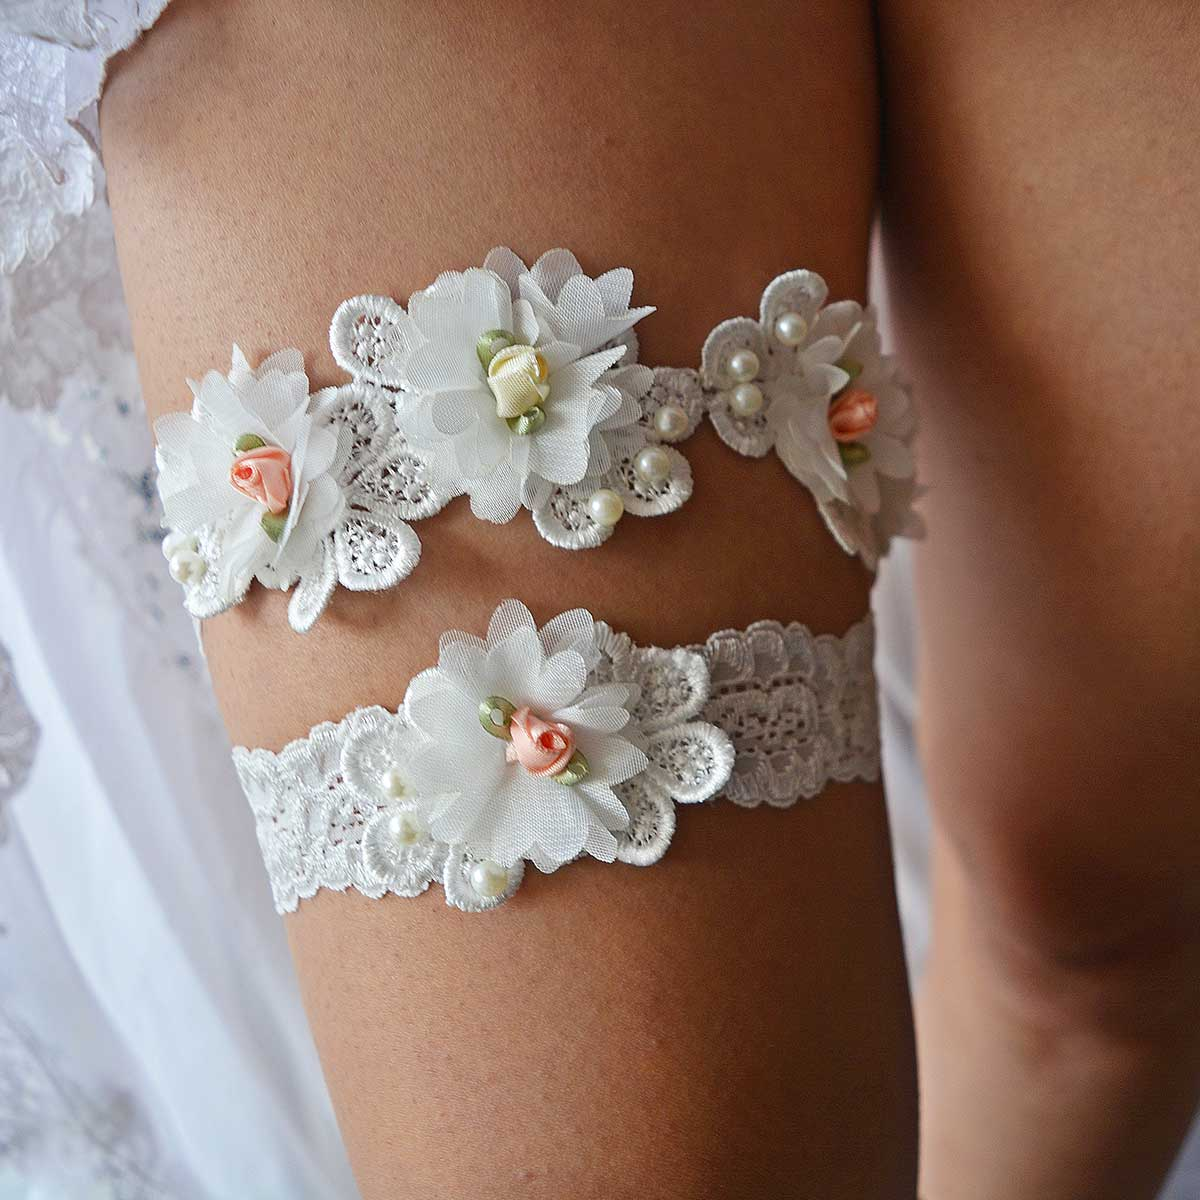 Off White Bridal Garter With Ivory Pearls & Flowers Handmade - Wedding Garter - SuzannaM Designs